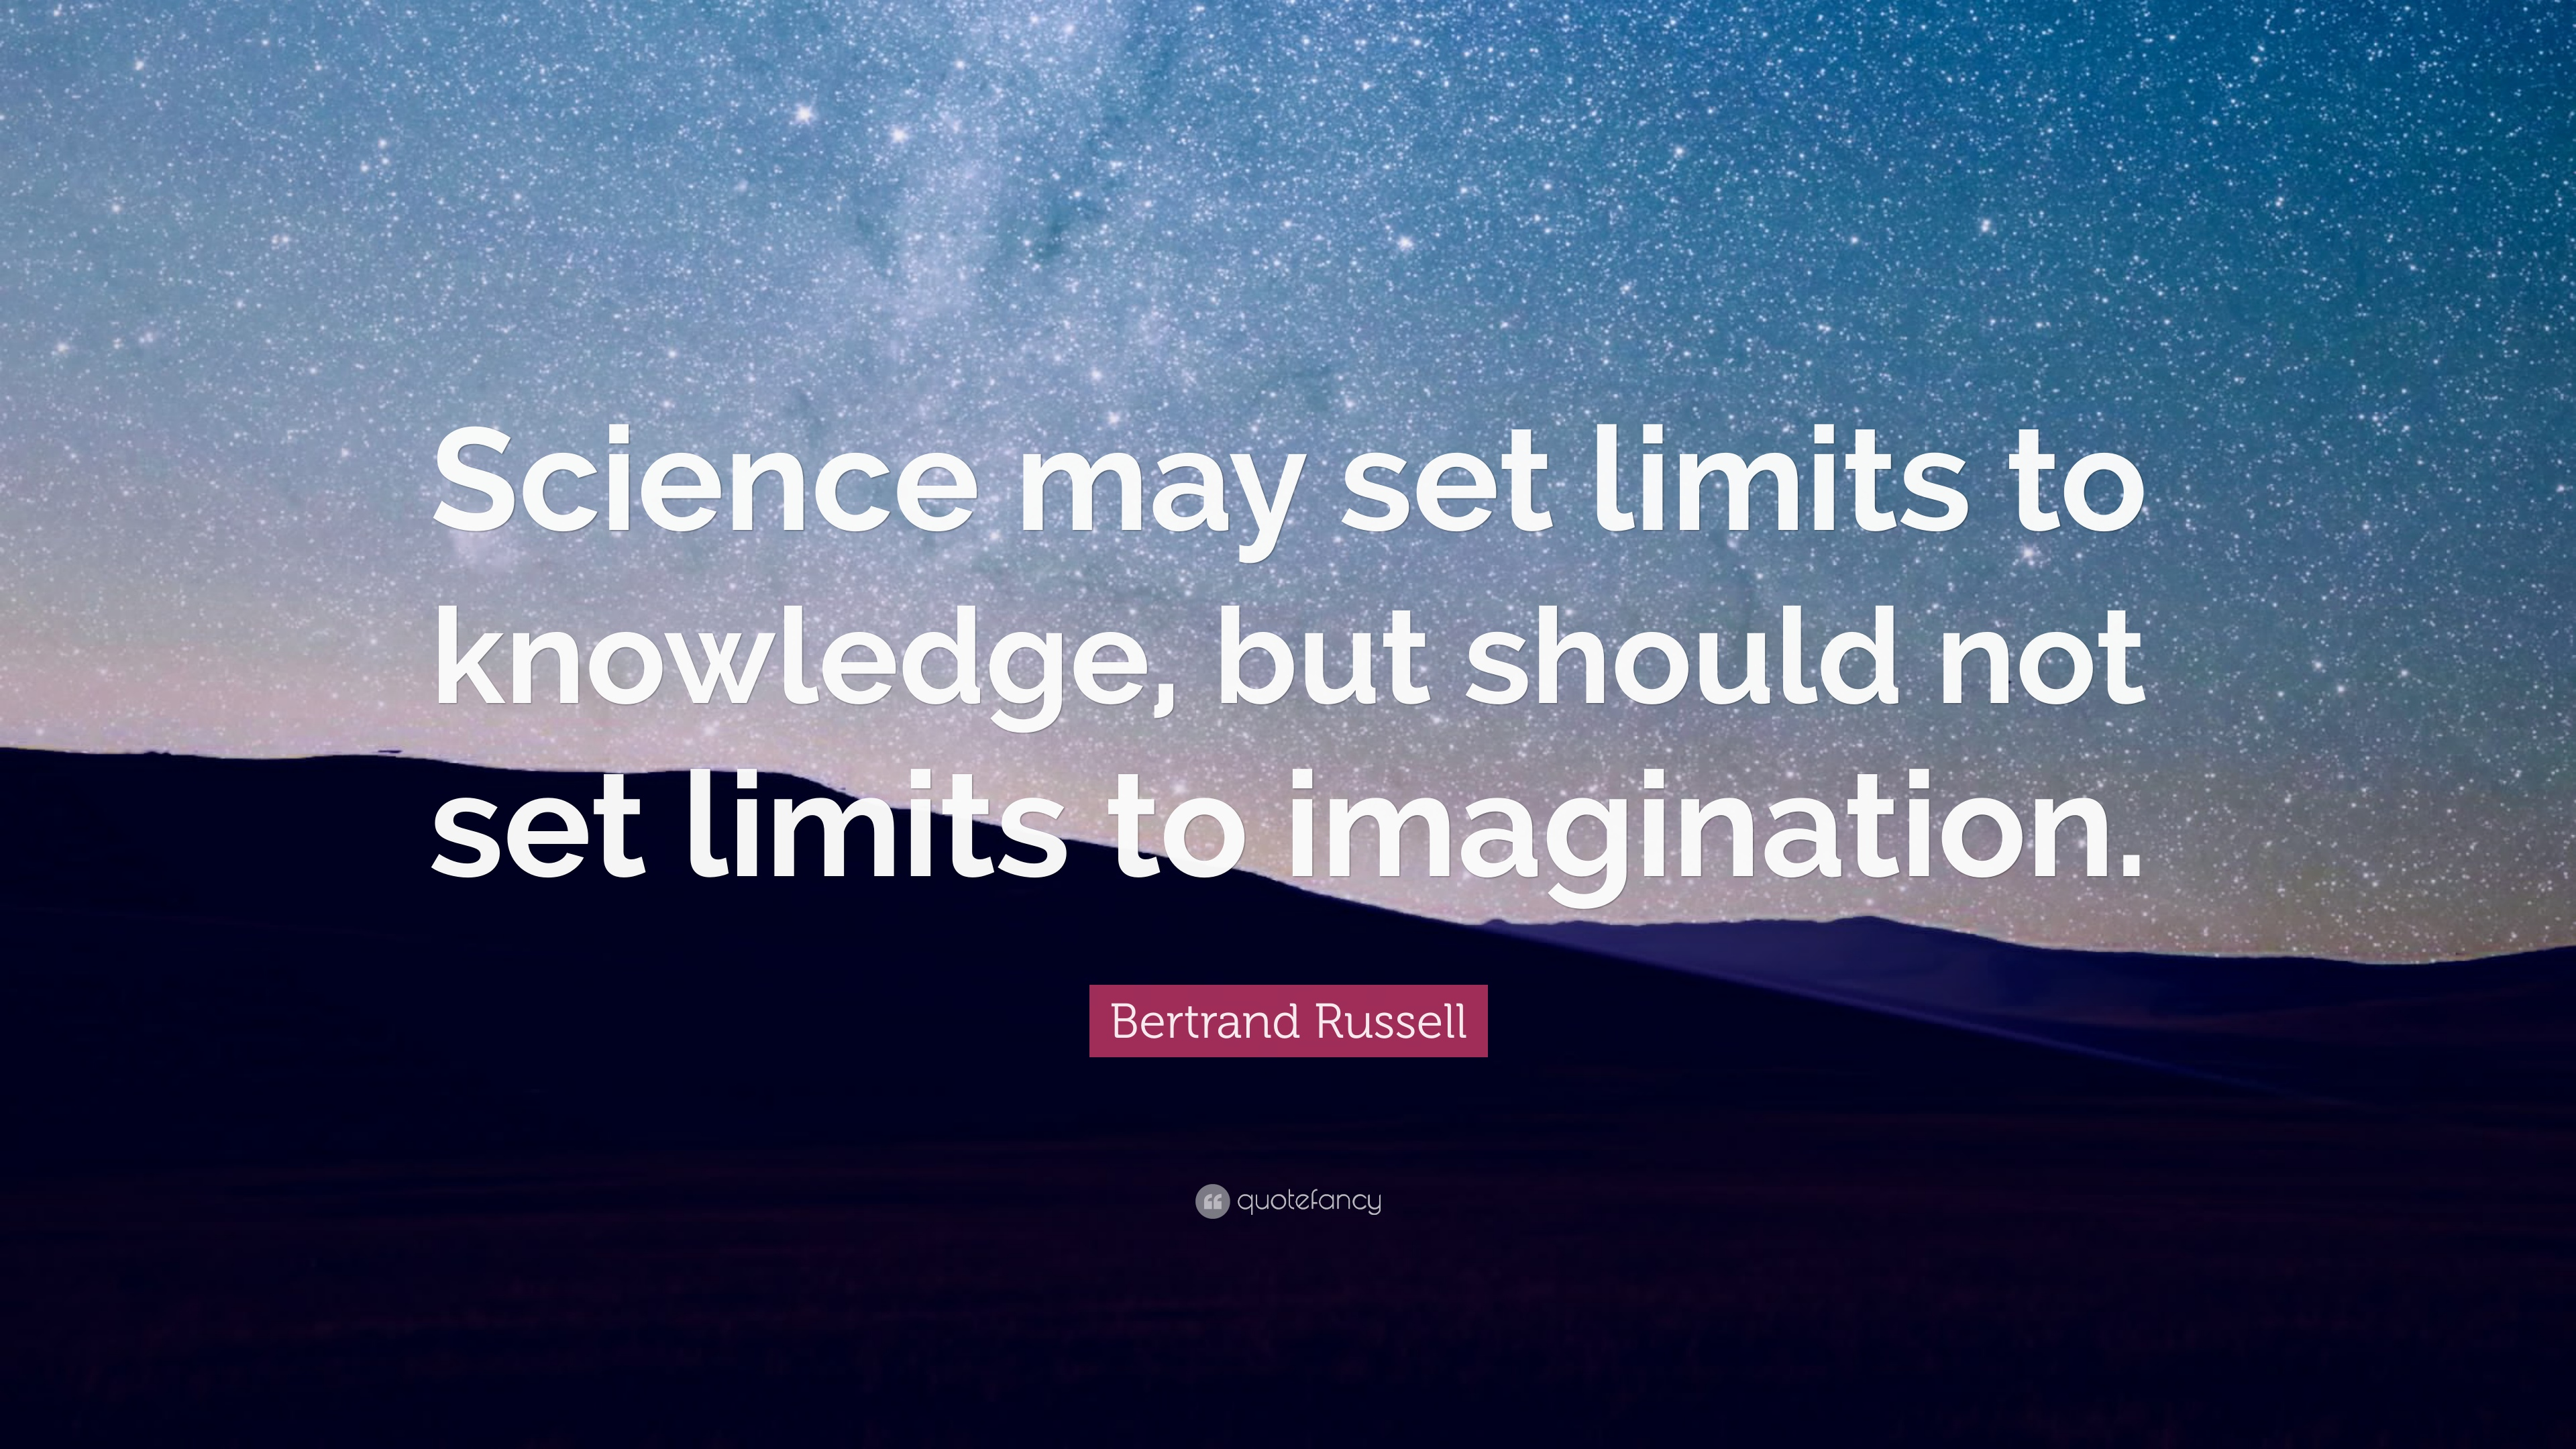 science quotes quote limits knowledge russell wallpapers imagination bertrand quotefancy